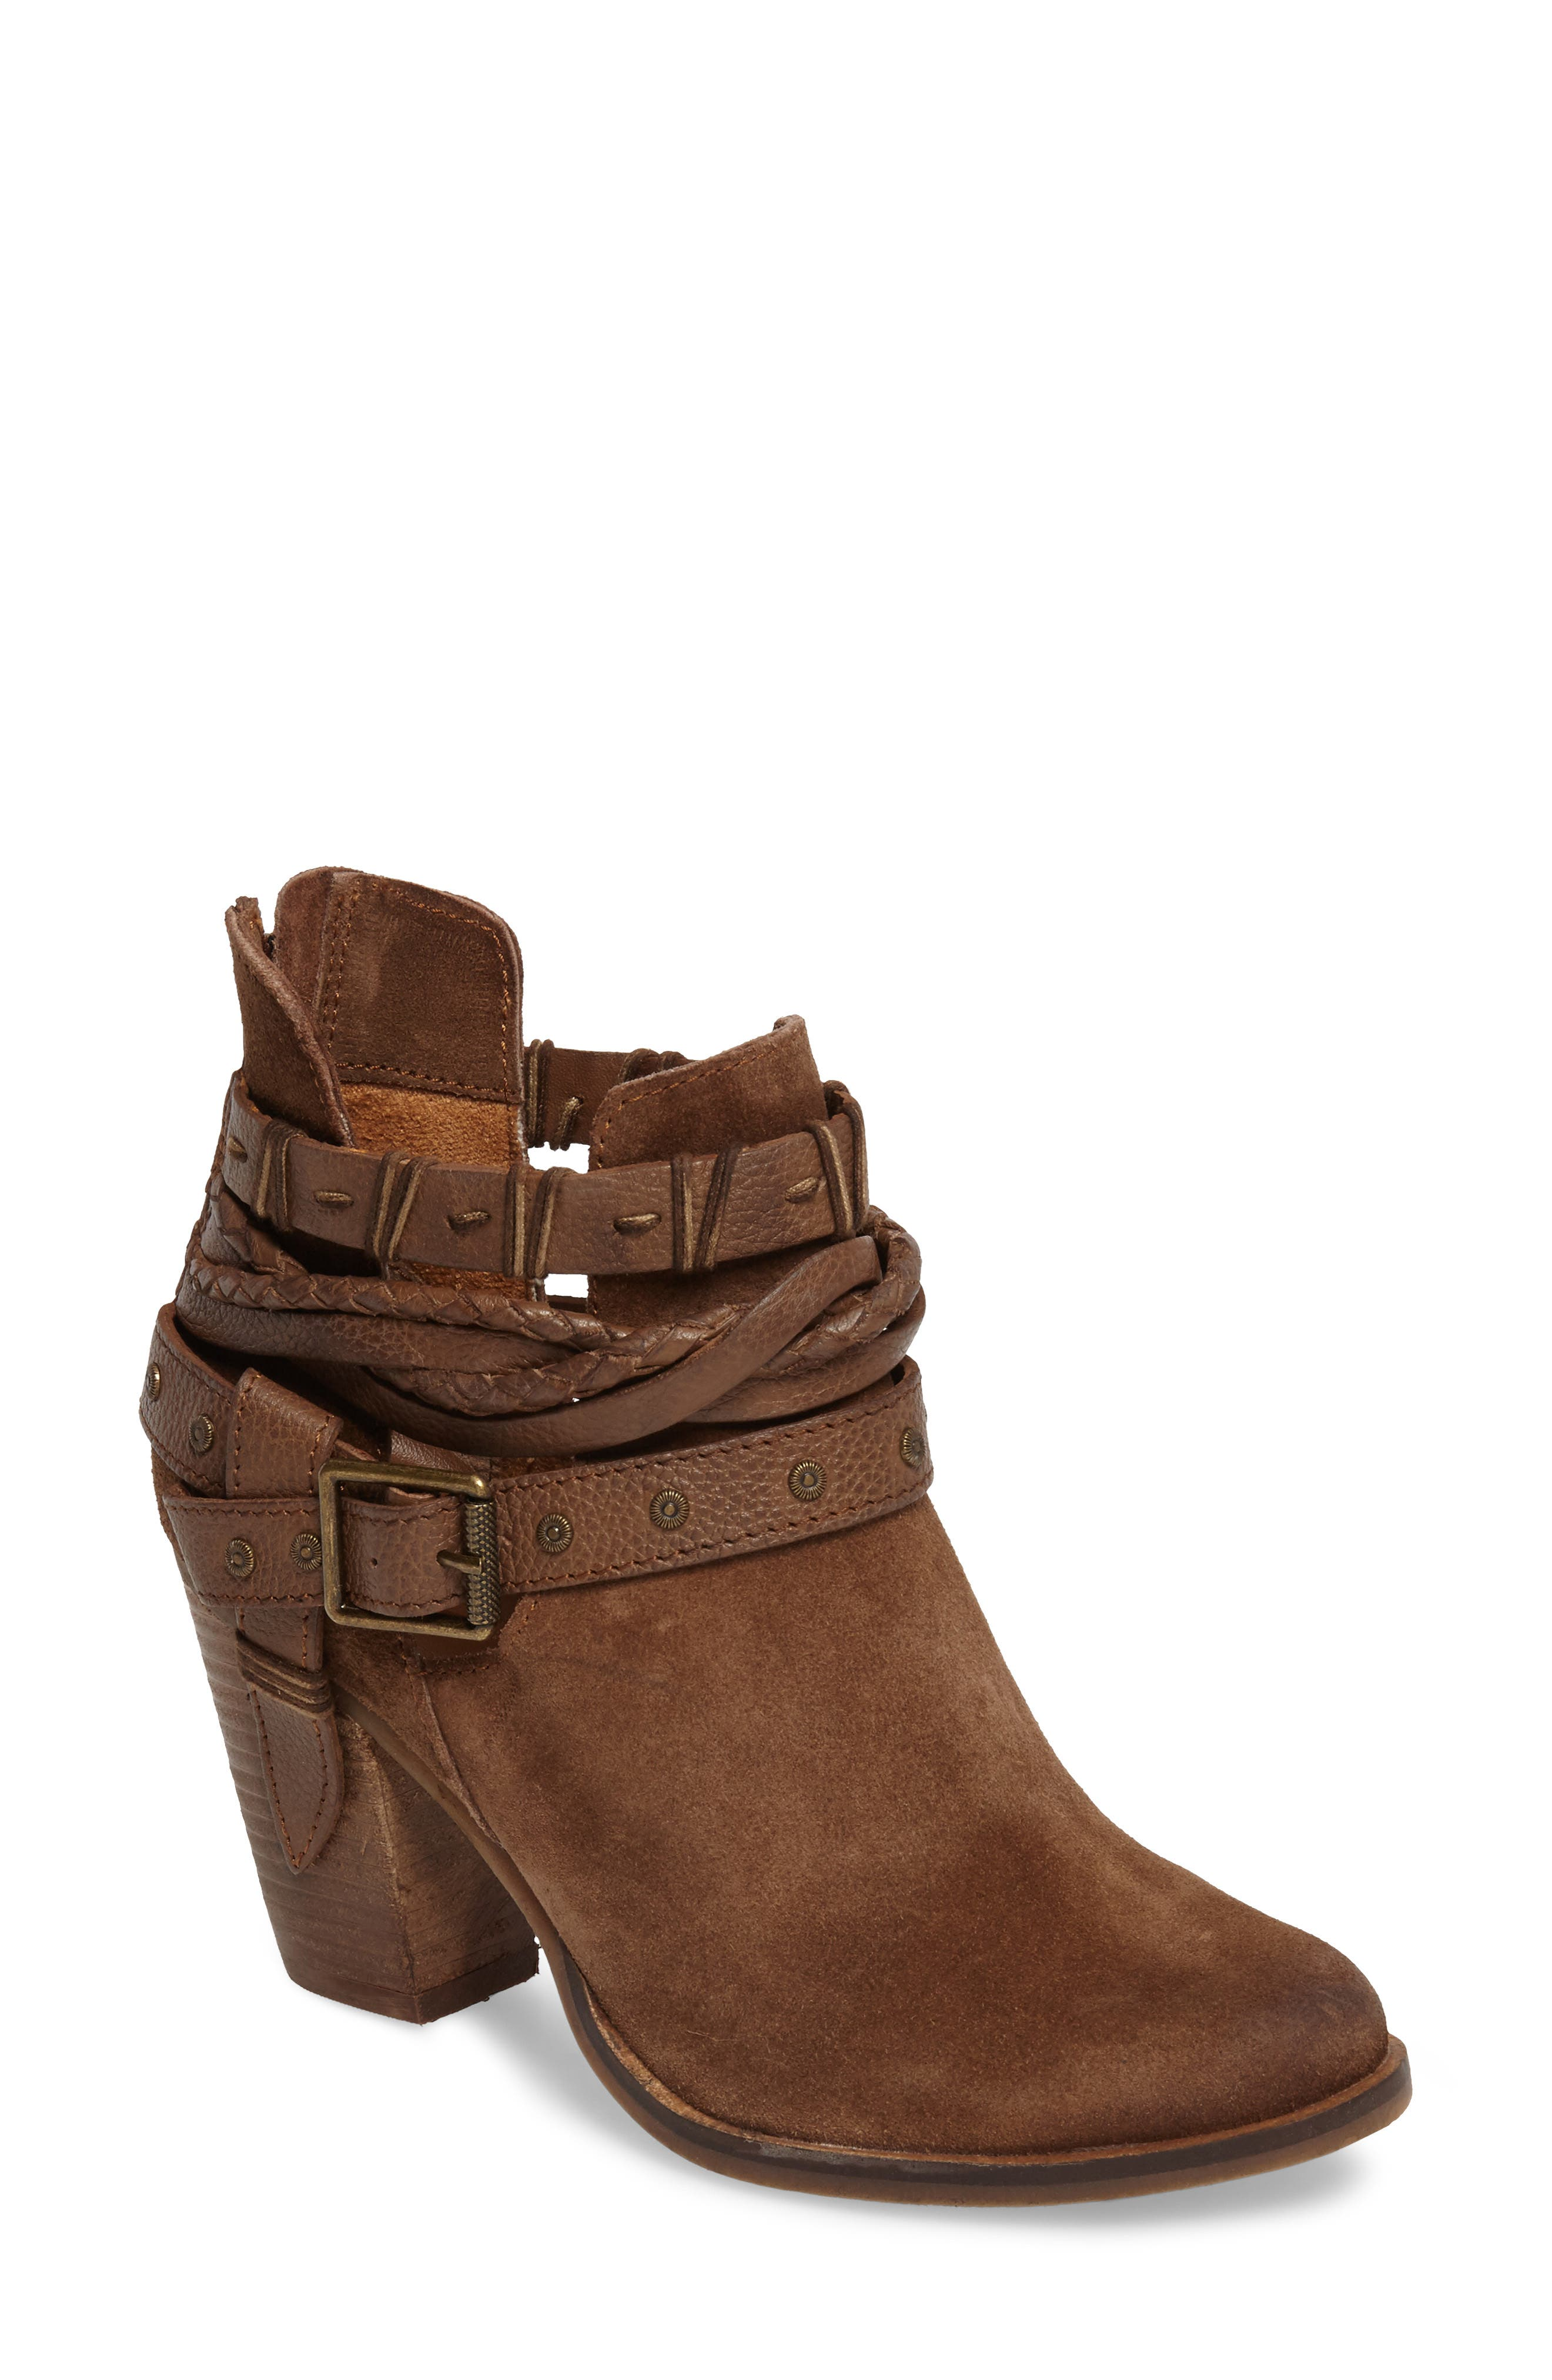 Main Image - Naughty Monkey Cuthbert Strappy Bootie (Women)